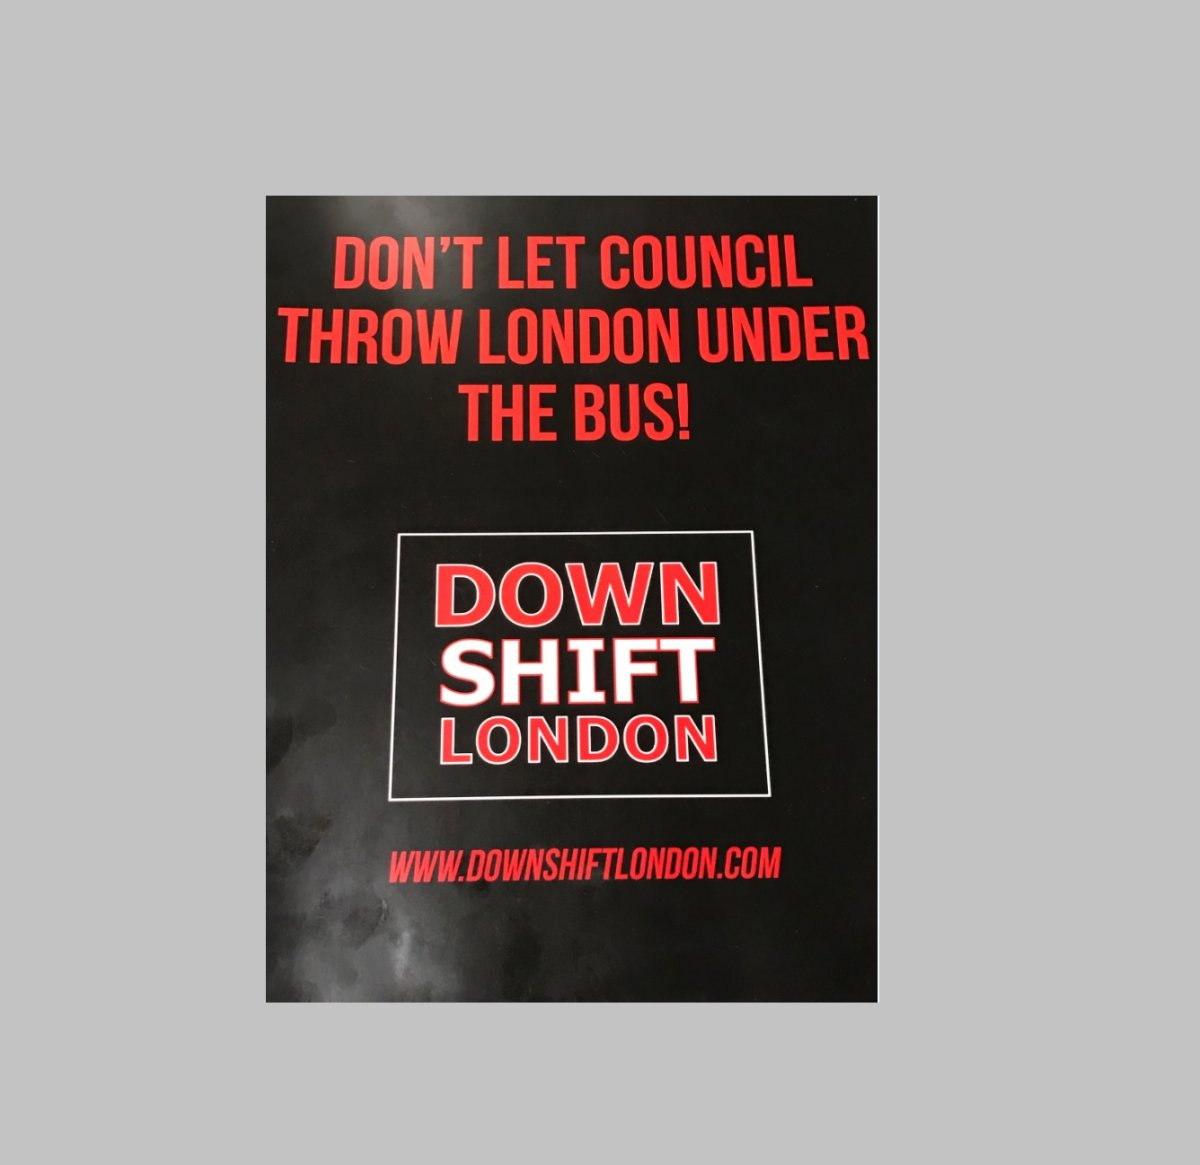 New lawn and window signs being distributed to residents and business owners by Down Shift London.